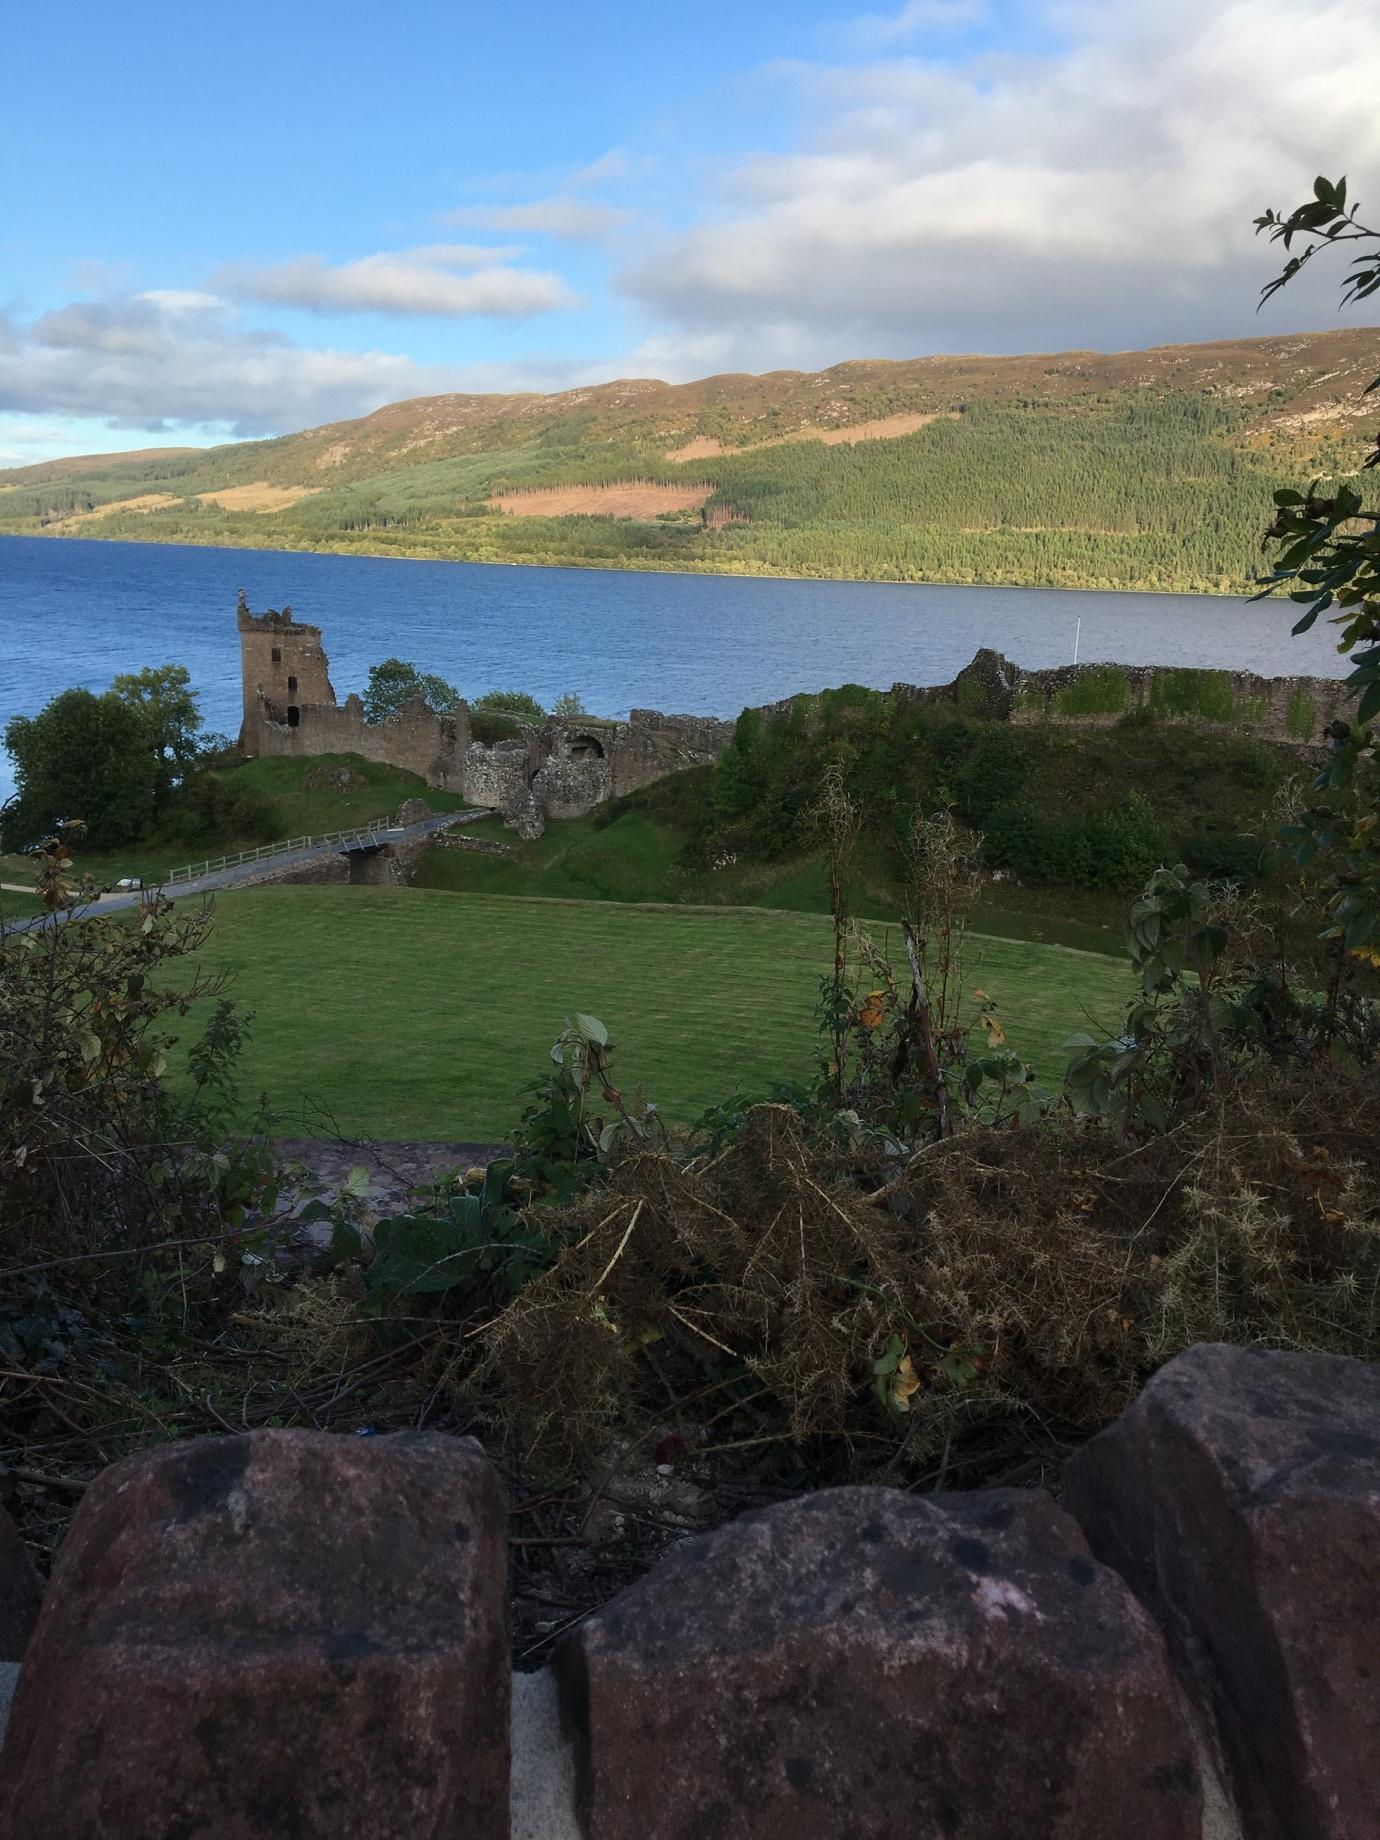 (Urquhart Castle and Loch Ness)